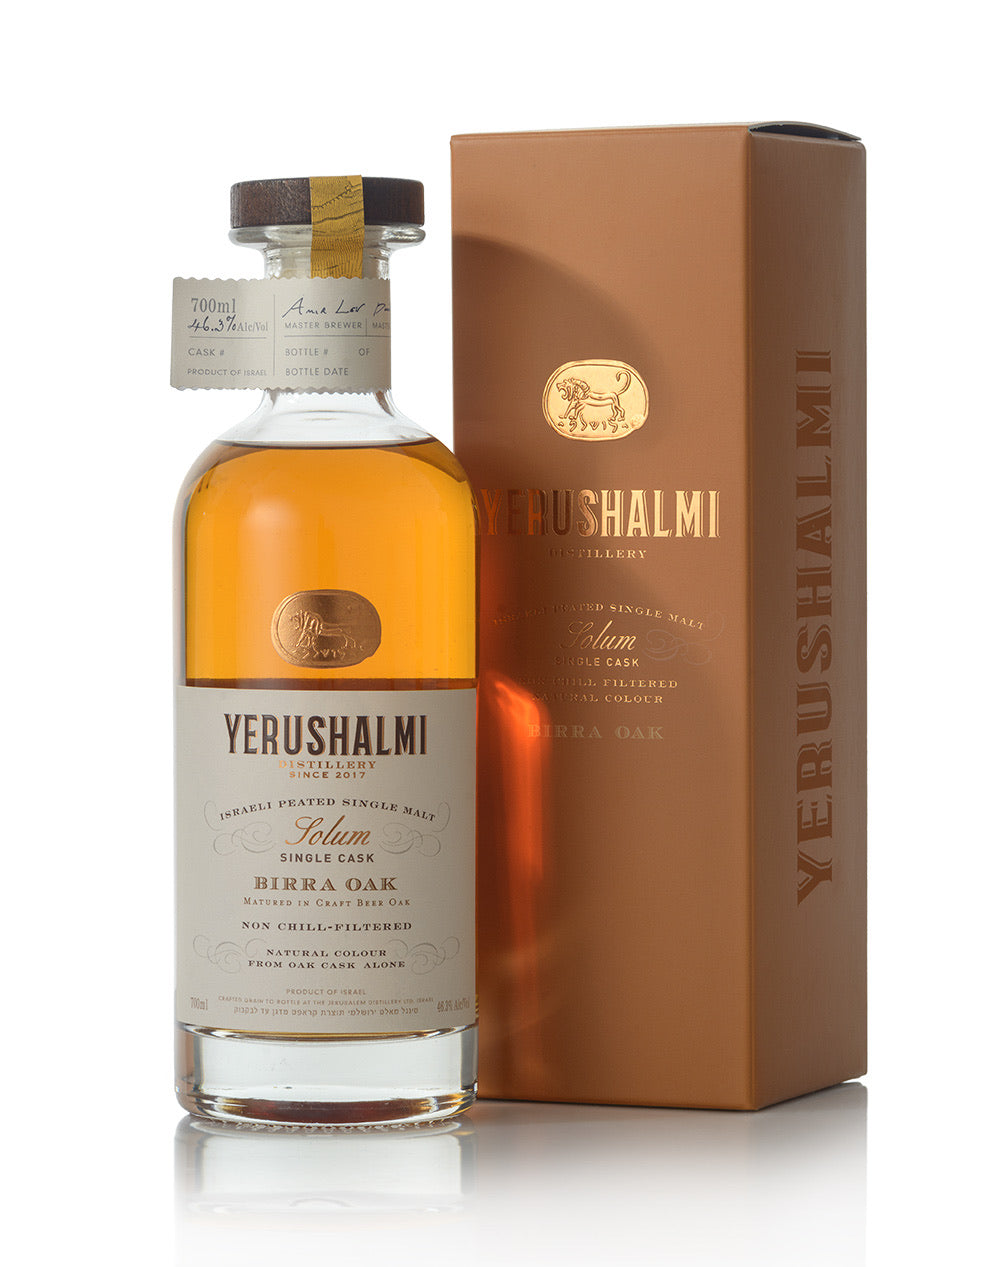 Yerushalmi Solum Birra Oak Single Cask 46.3%